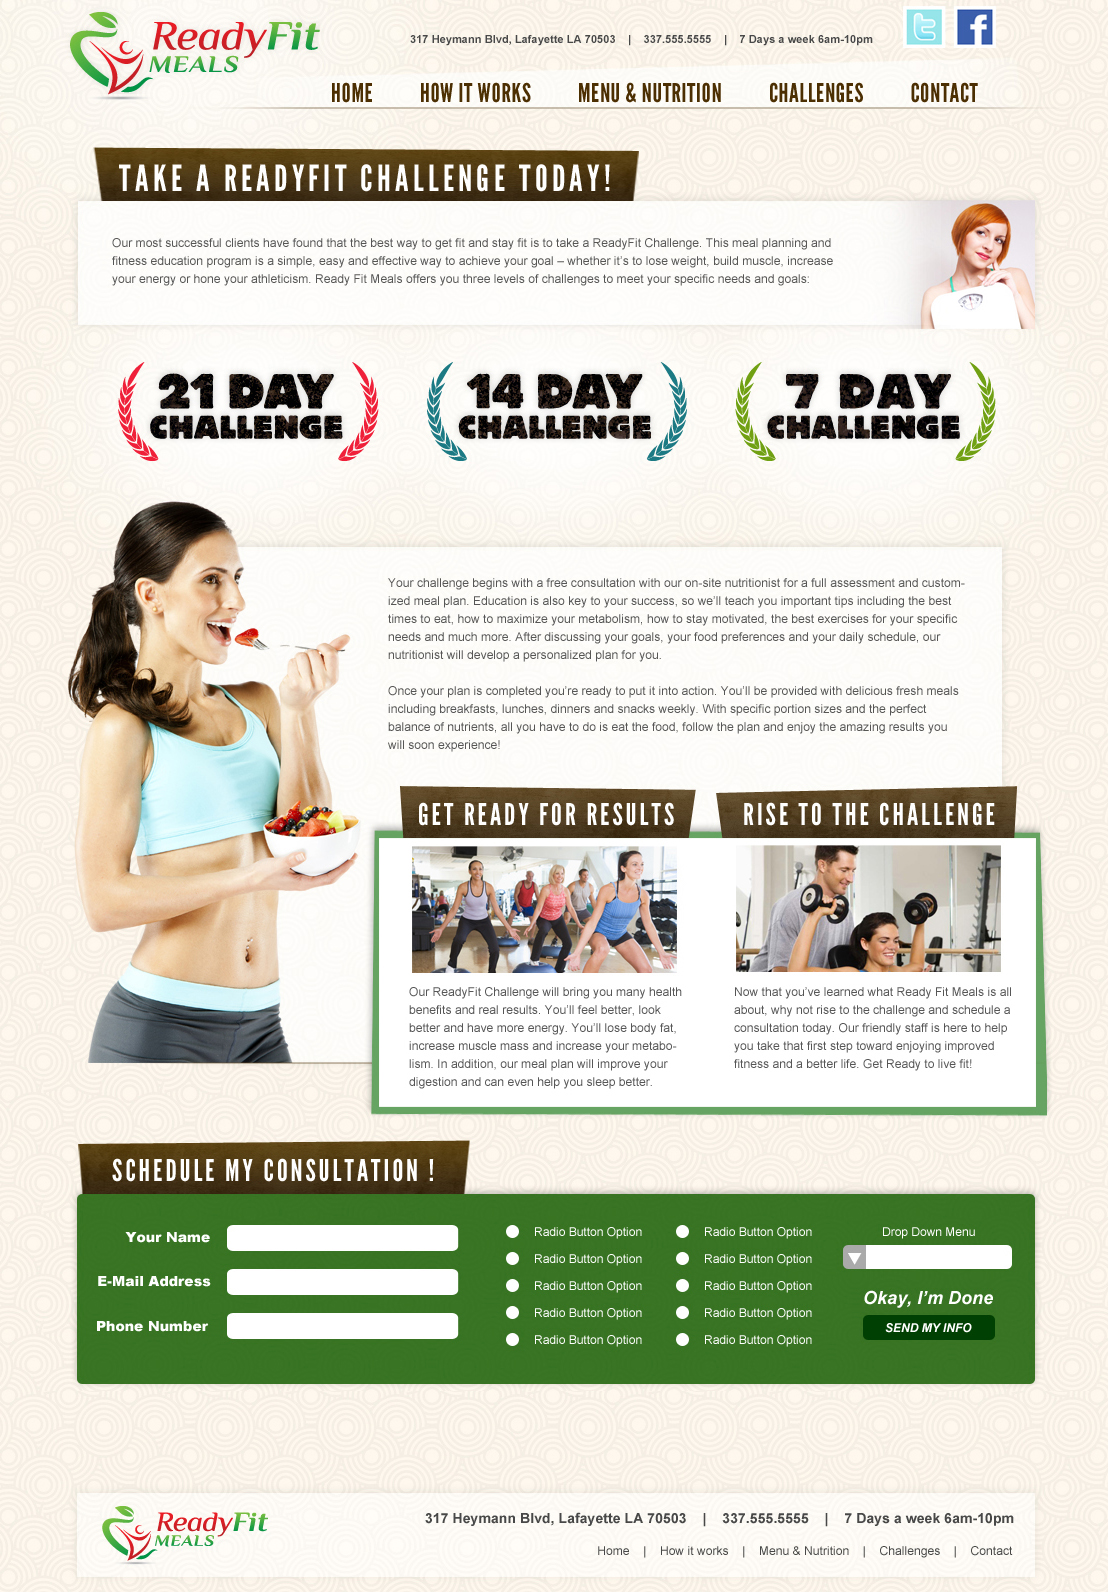 A fit meals restaurant web design screenshot for a company in Houston TX